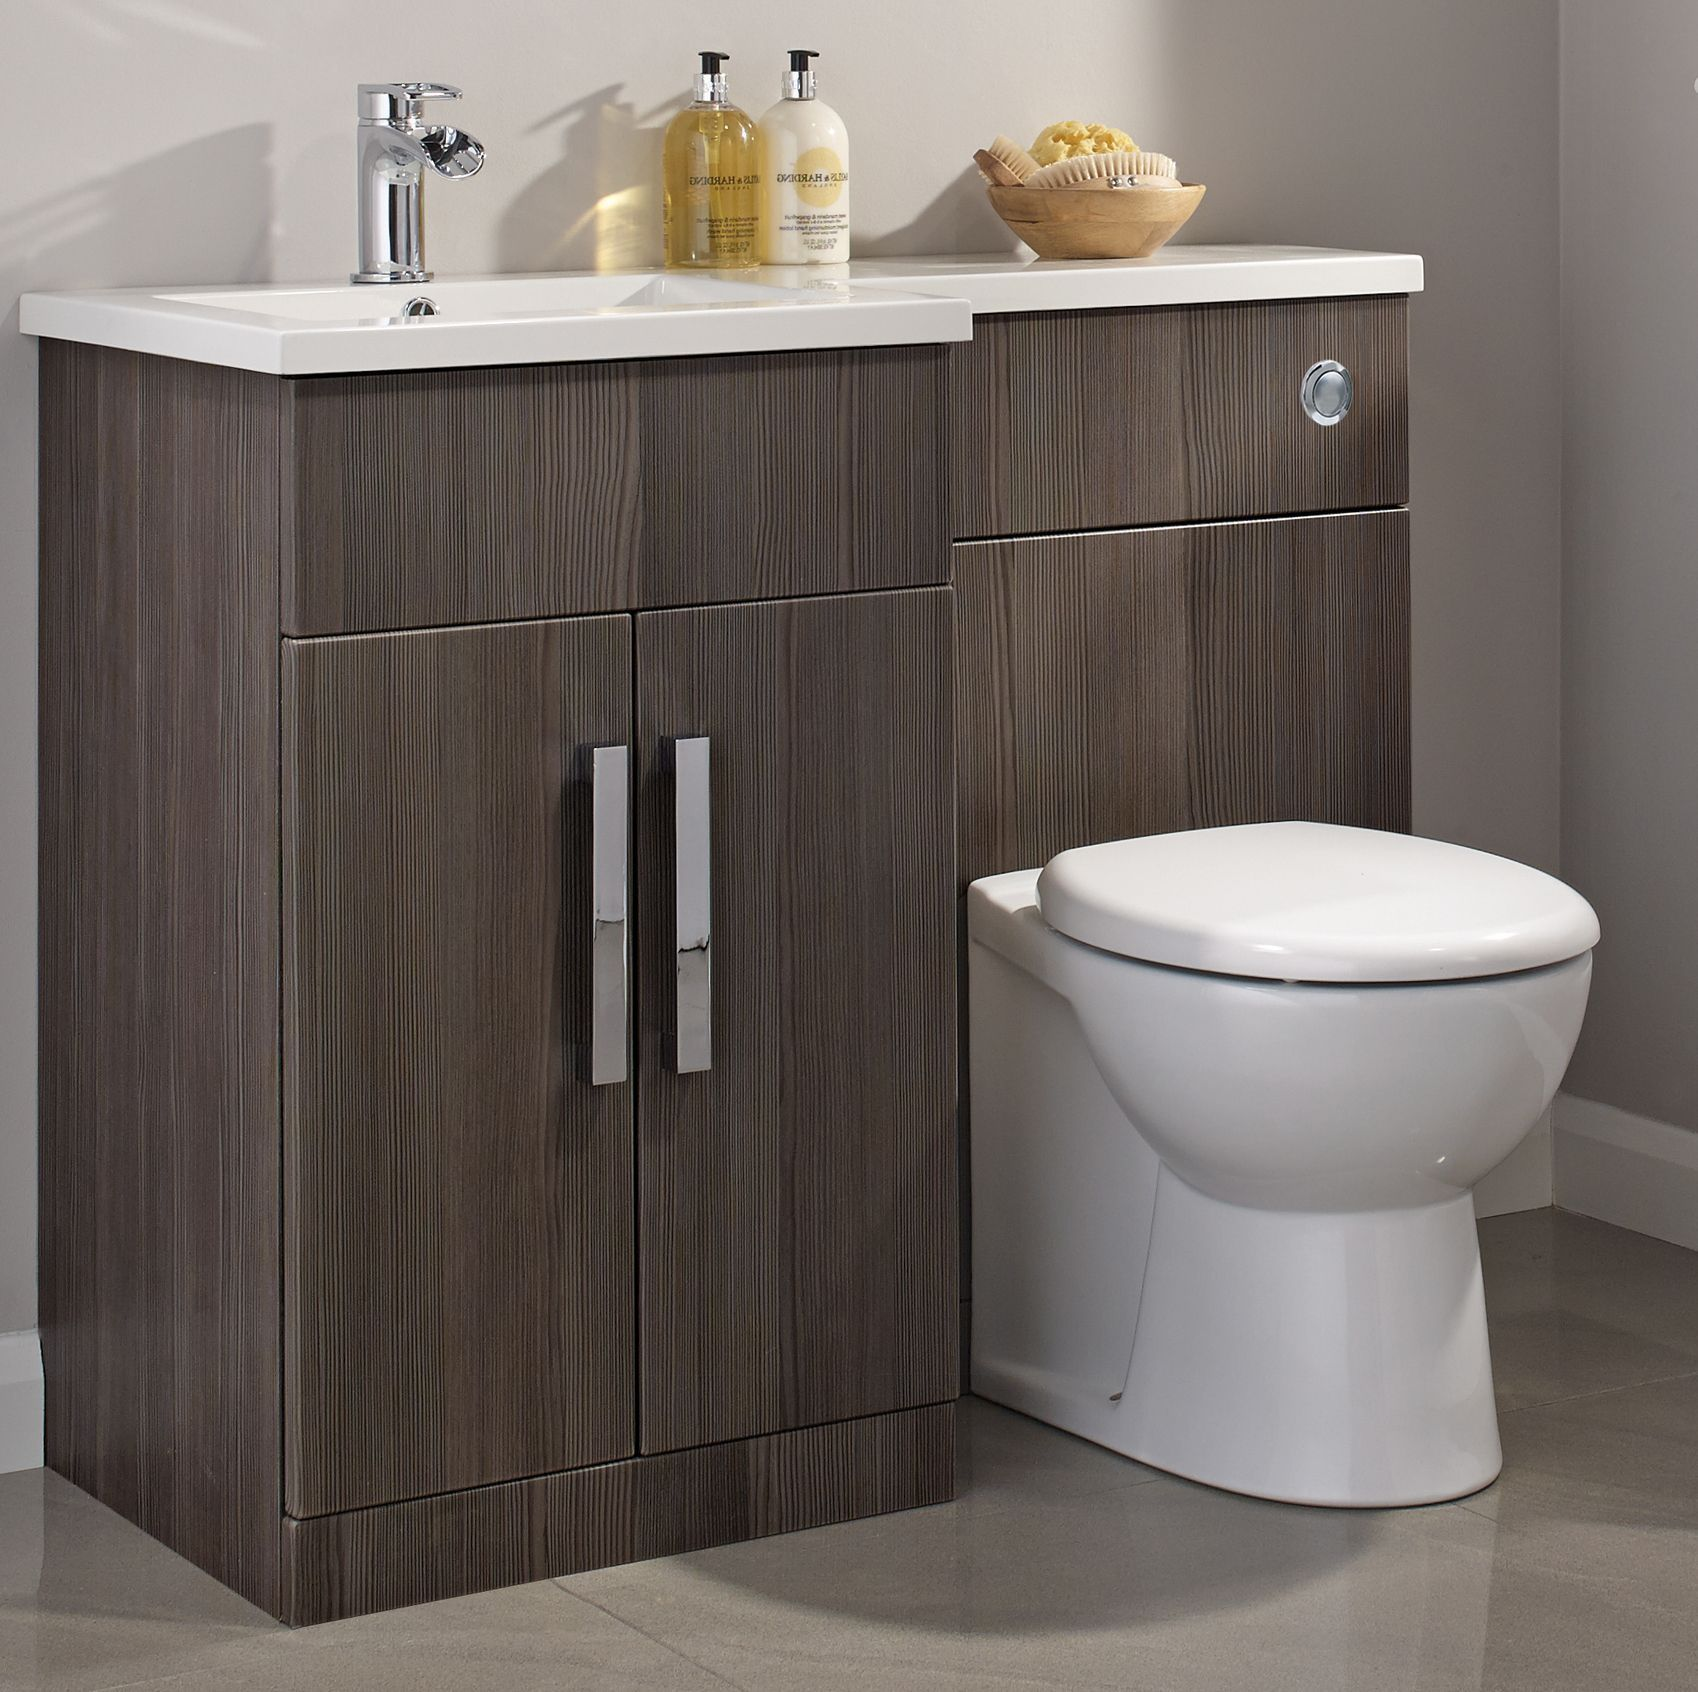 Toilet & Vanity Units | Free-Standing Furniture | Bathroom ...